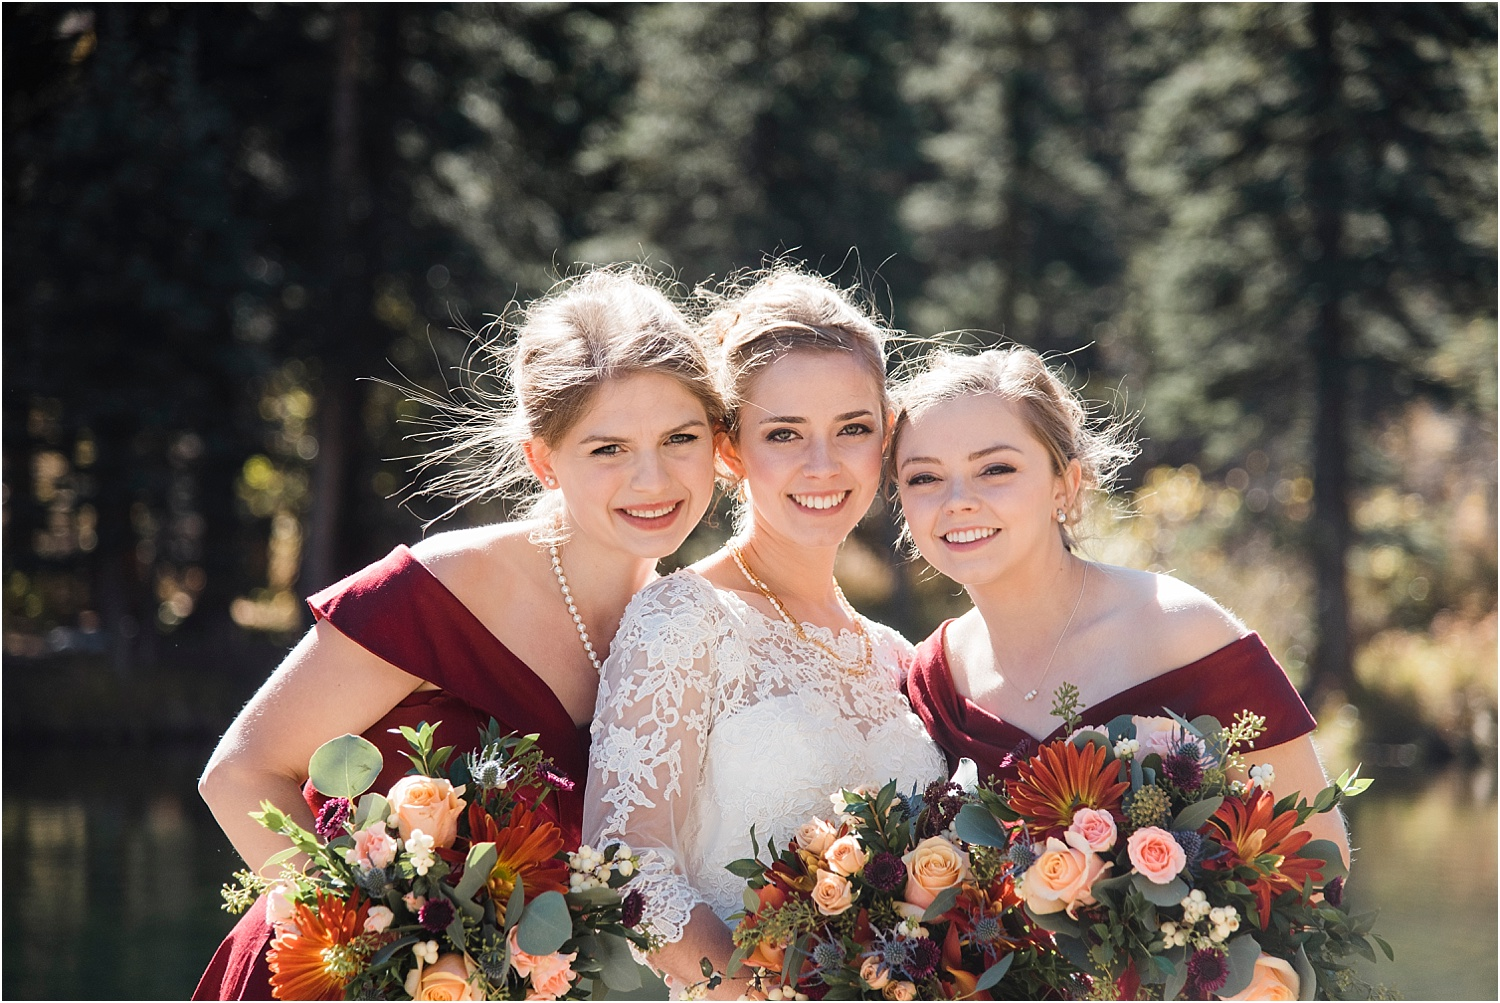 Buena_Vista_Destination_Wedding_Photographer_Apollo_Fields_Colorado_0010.jpg